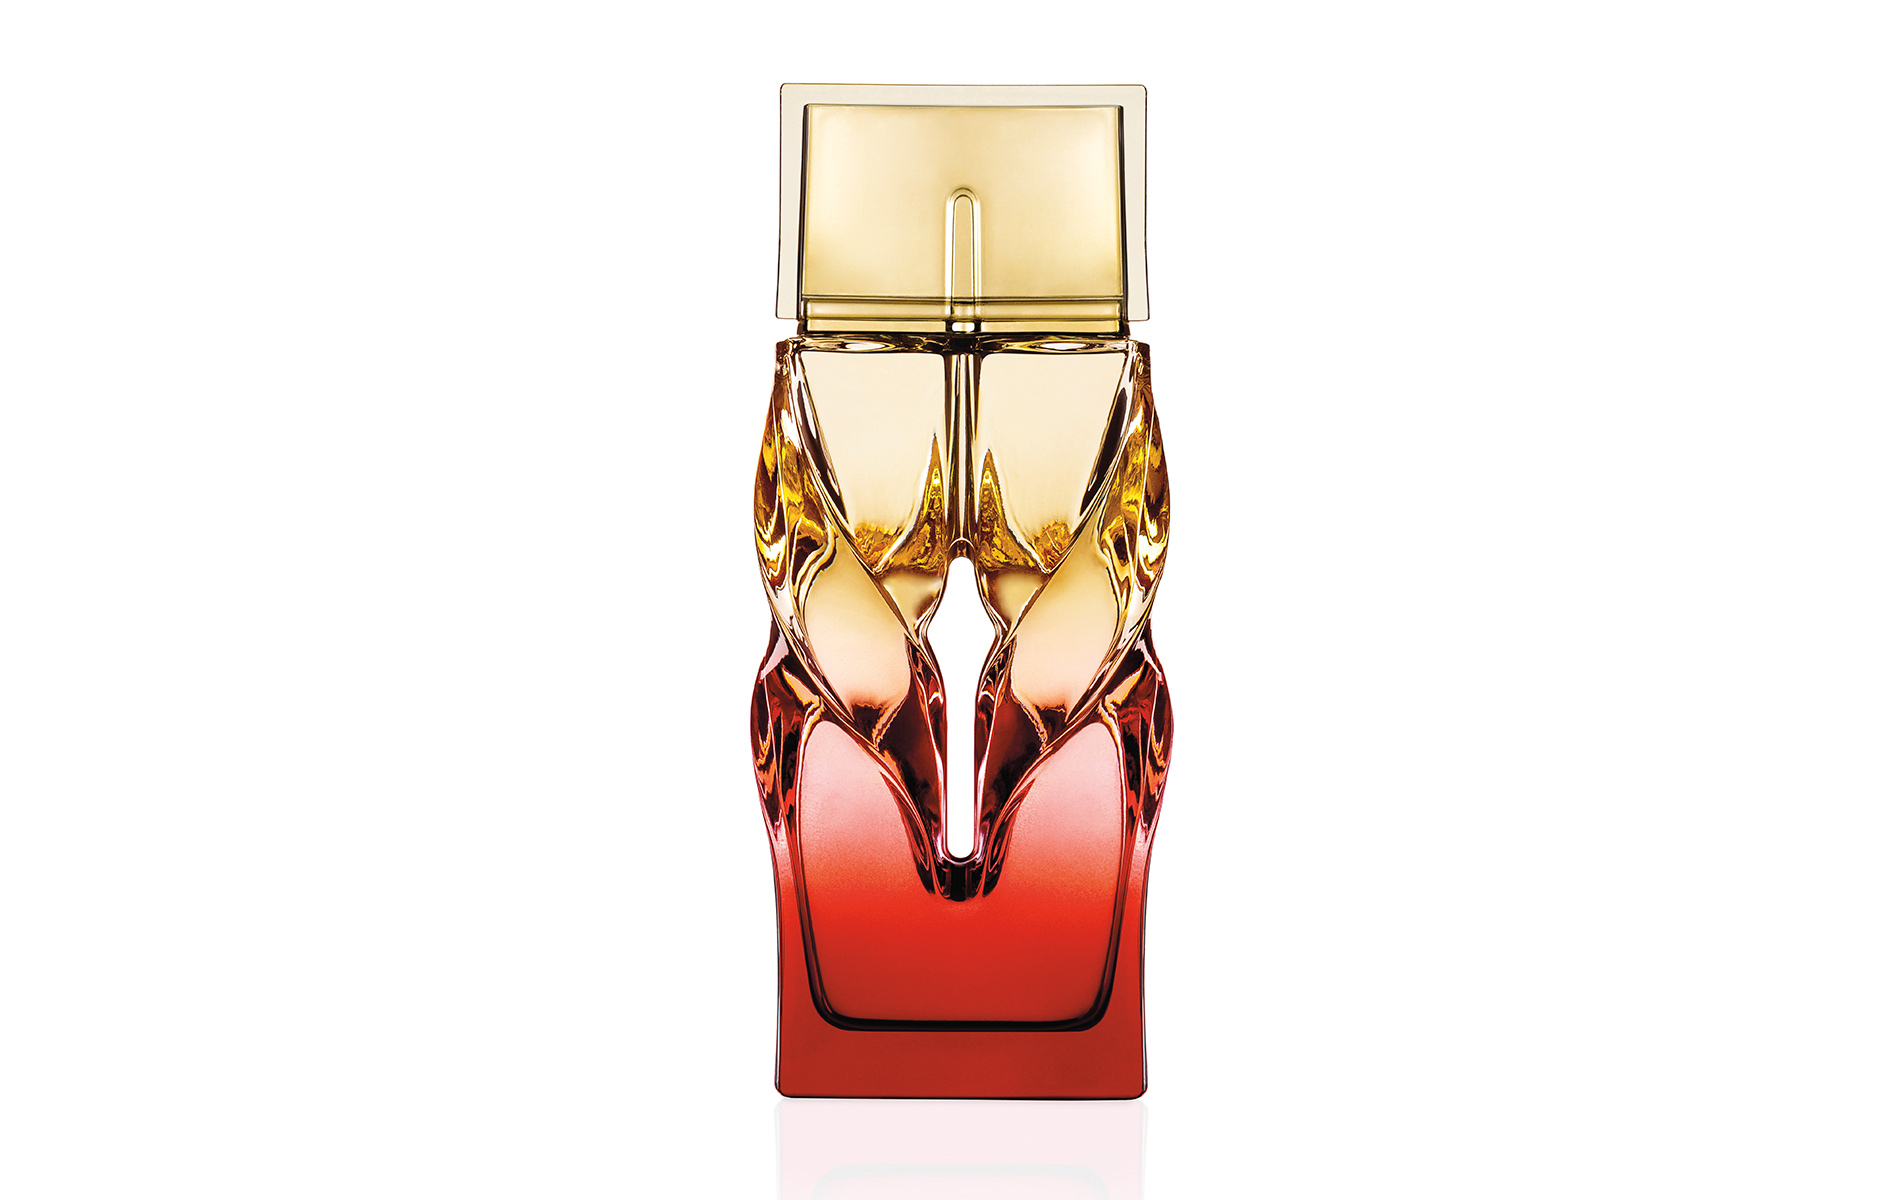 Christian Louboutin's new fragrance inspired by his goddaughter luxury fragrance